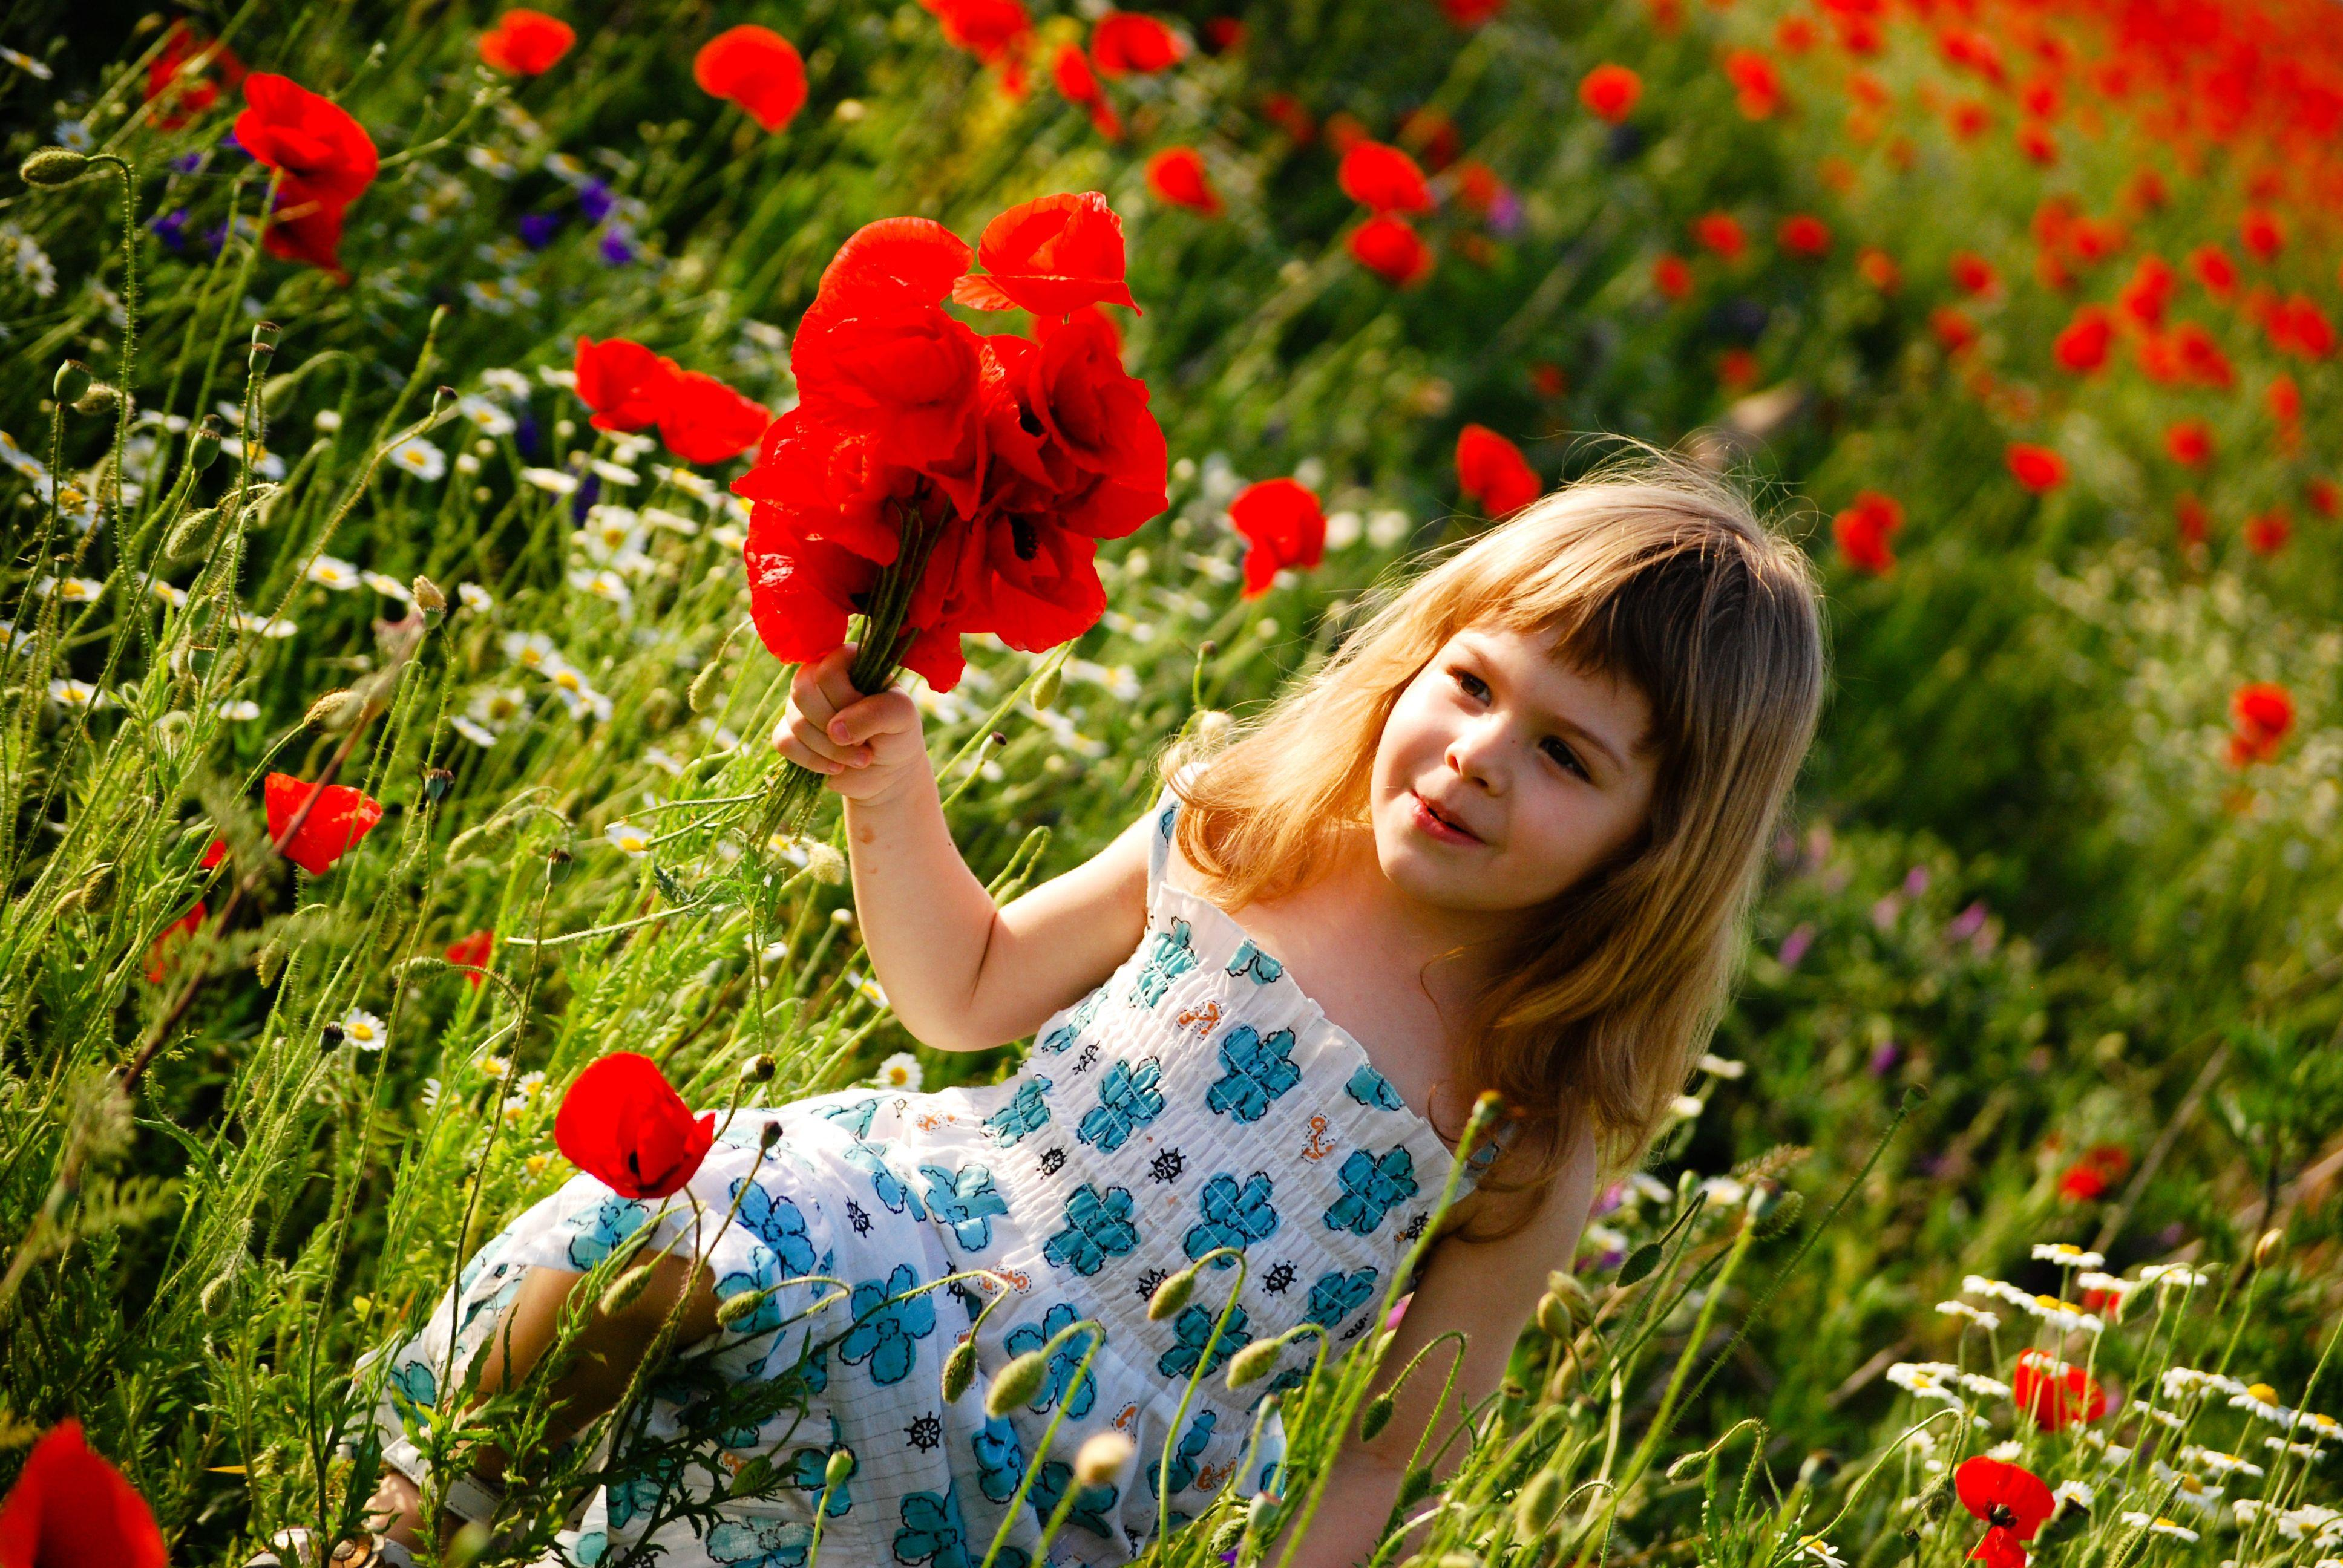 cute baby girl picture with flowers | beautiful images